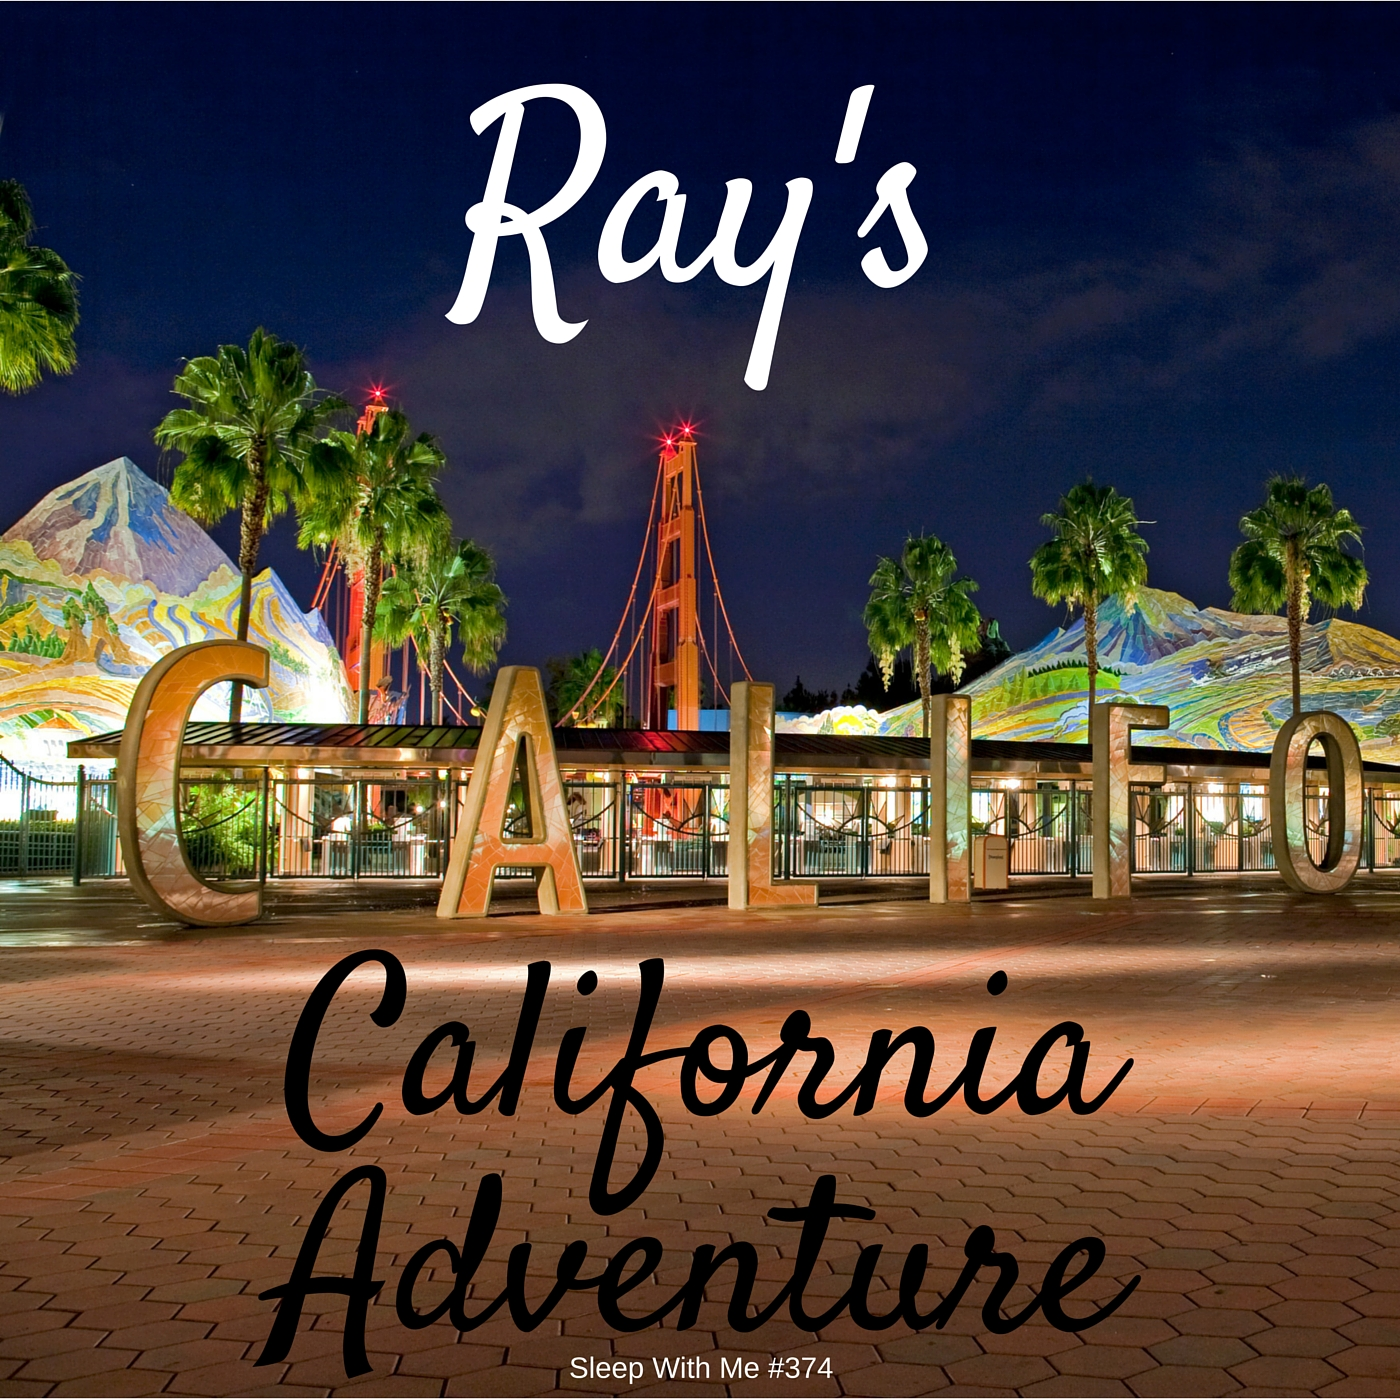 Ray's California Adventure | Trending Tuesday | Sleep With Me #374